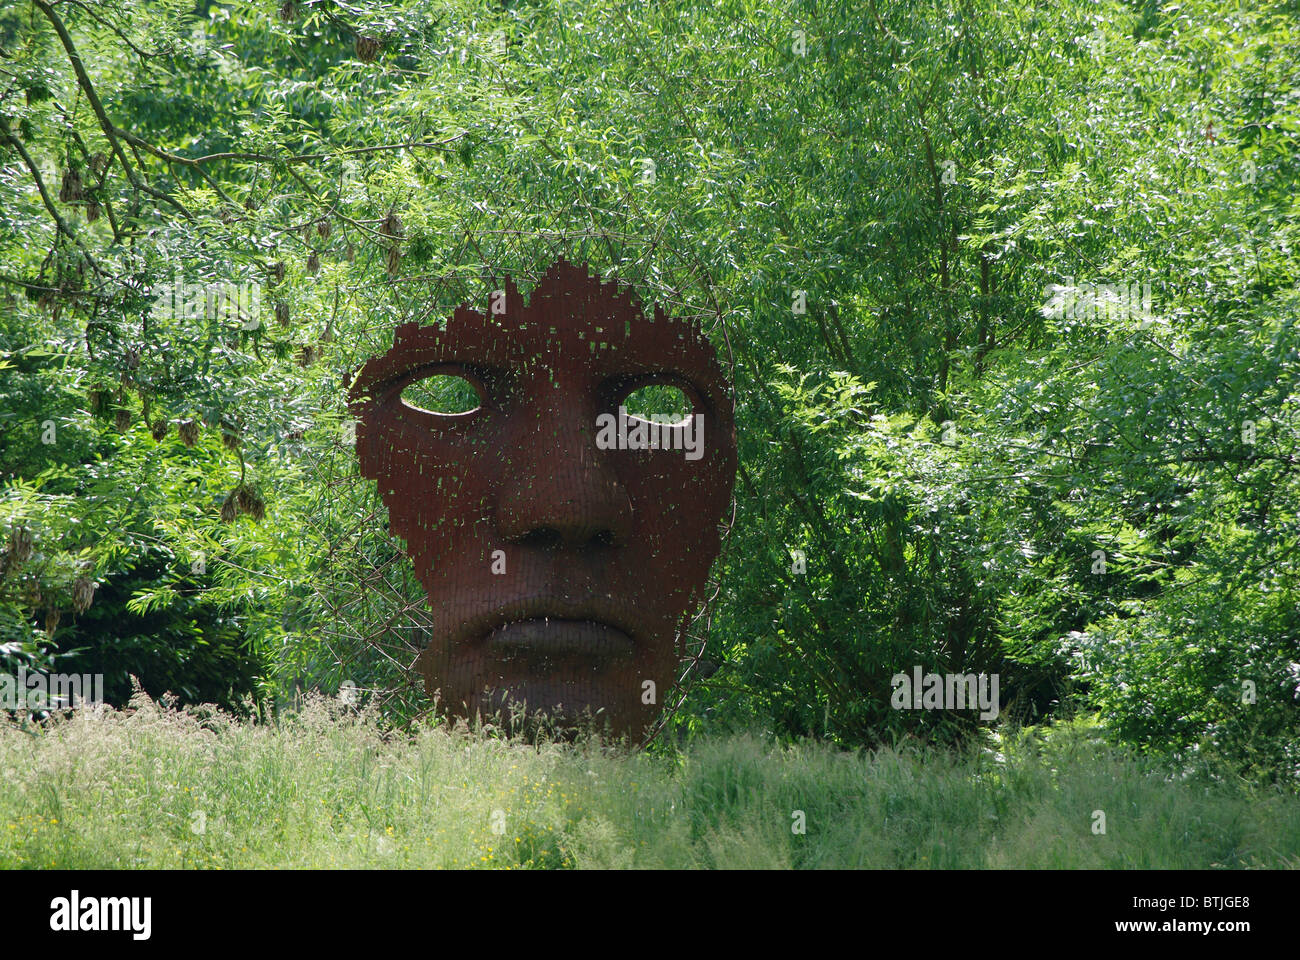 Metallic Sculpture Of A Face In The Sculpture Garden At Burghley House,  Stamford, Lincolnshire, UK